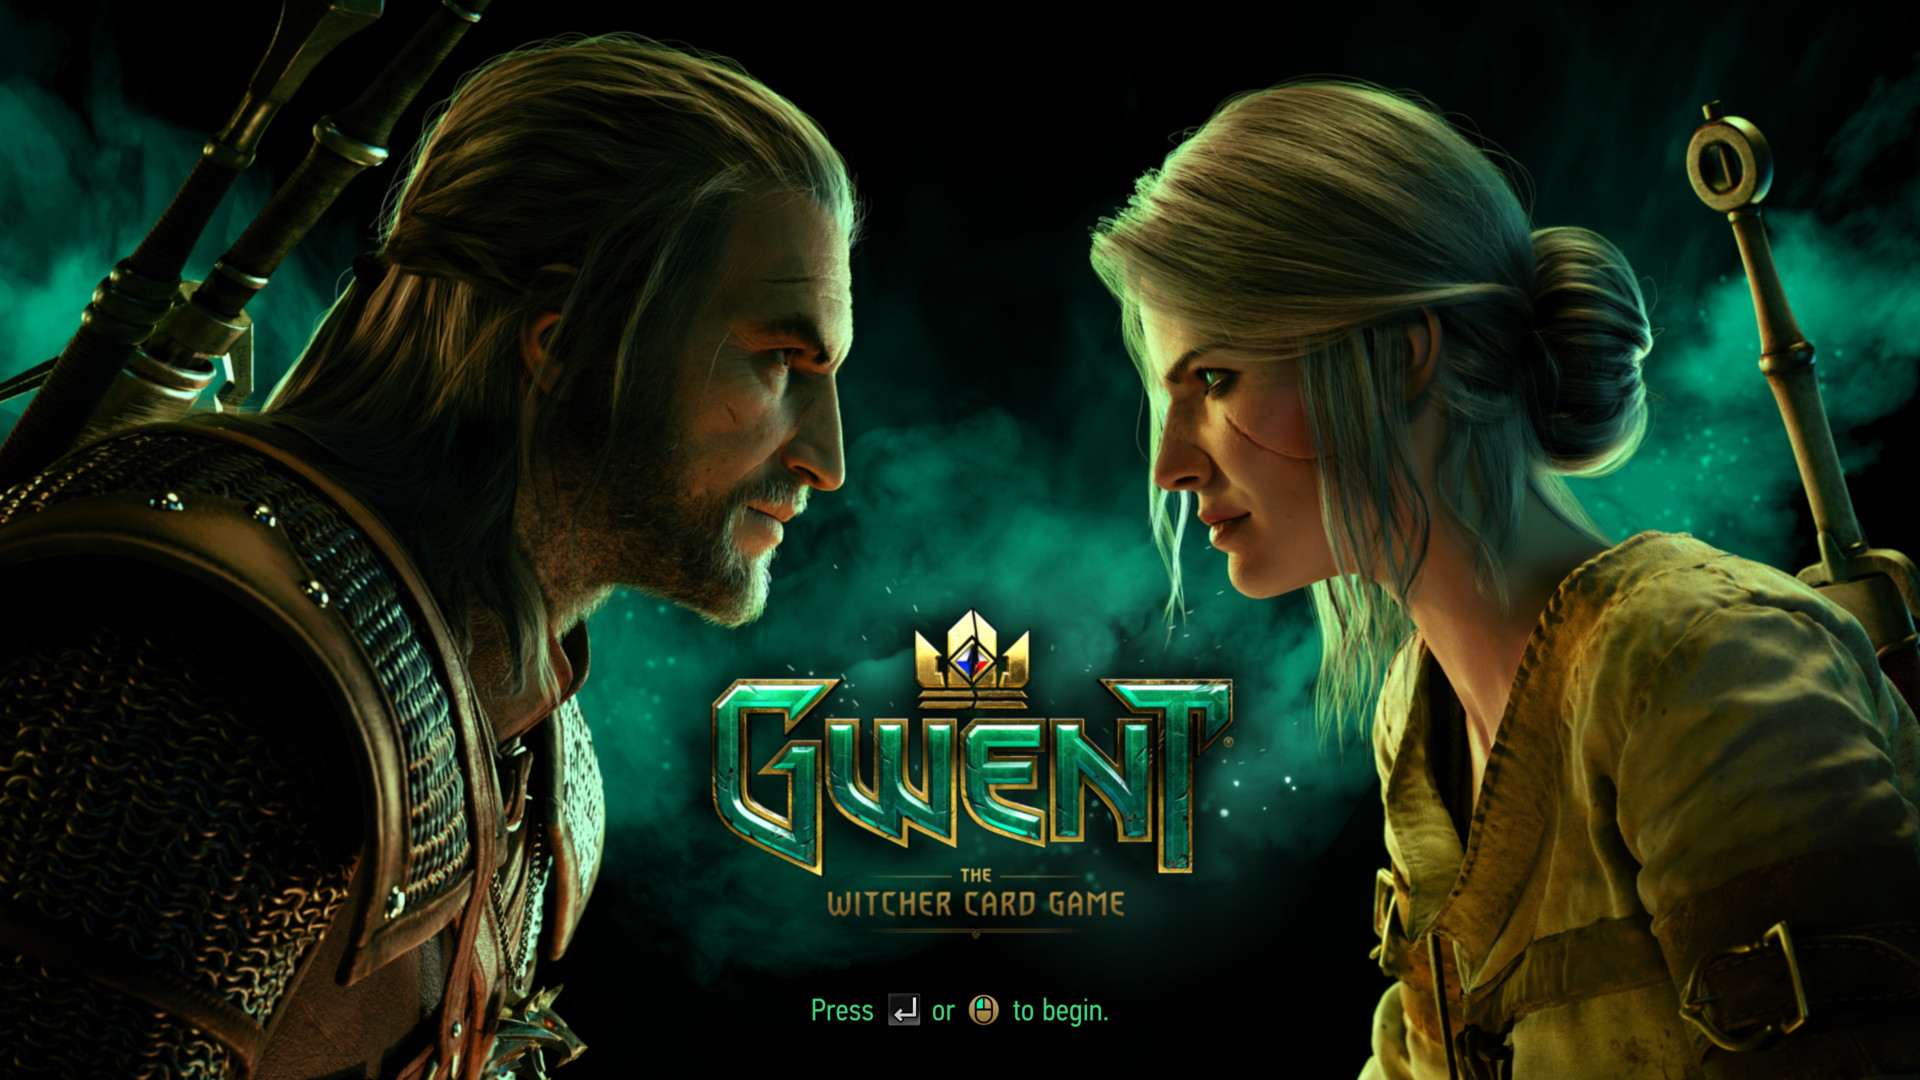 Press enter to begin screenshot of Gwent: The Witcher Card Game video game interface.